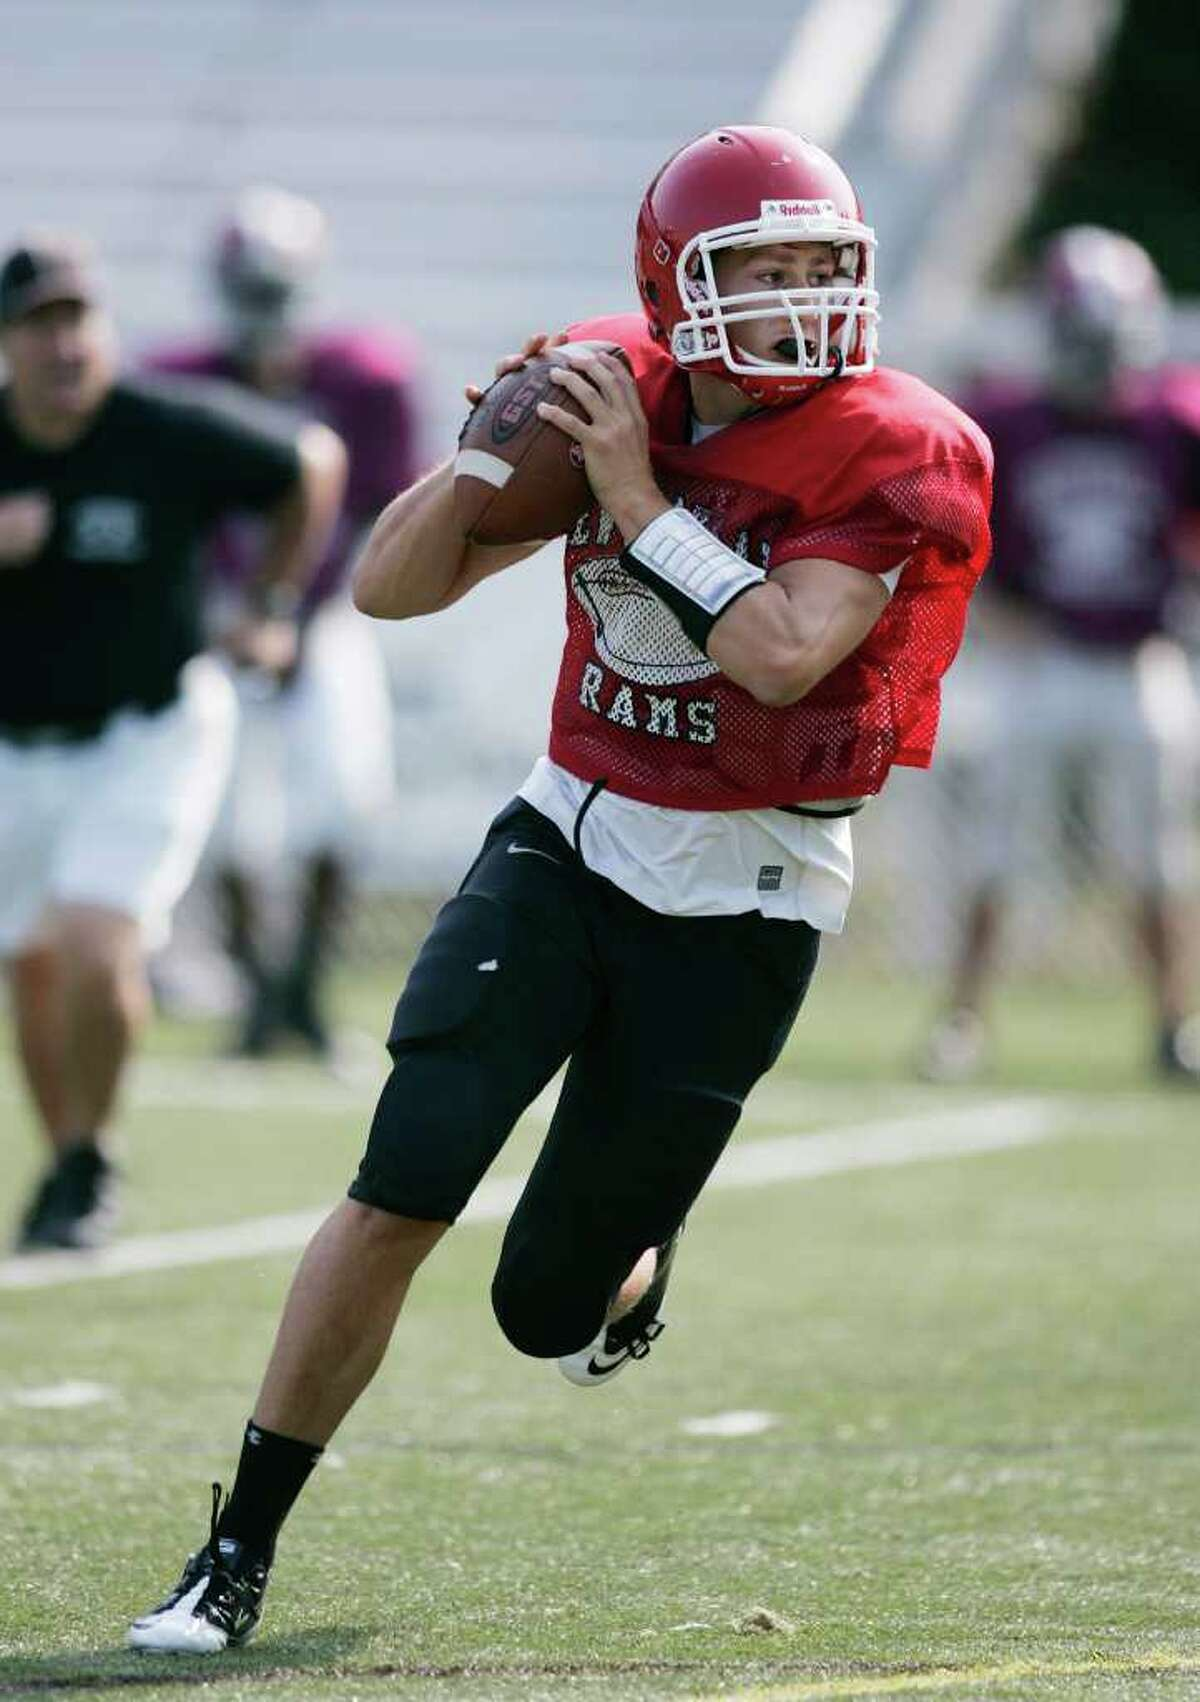 Senior New Canaan High School QB Matt Milano rolls right and looks for a open receiver during a controlled scrimmage session against Stepinac HS. Milano is expected to figure big again in the Rams offensive plans this season.